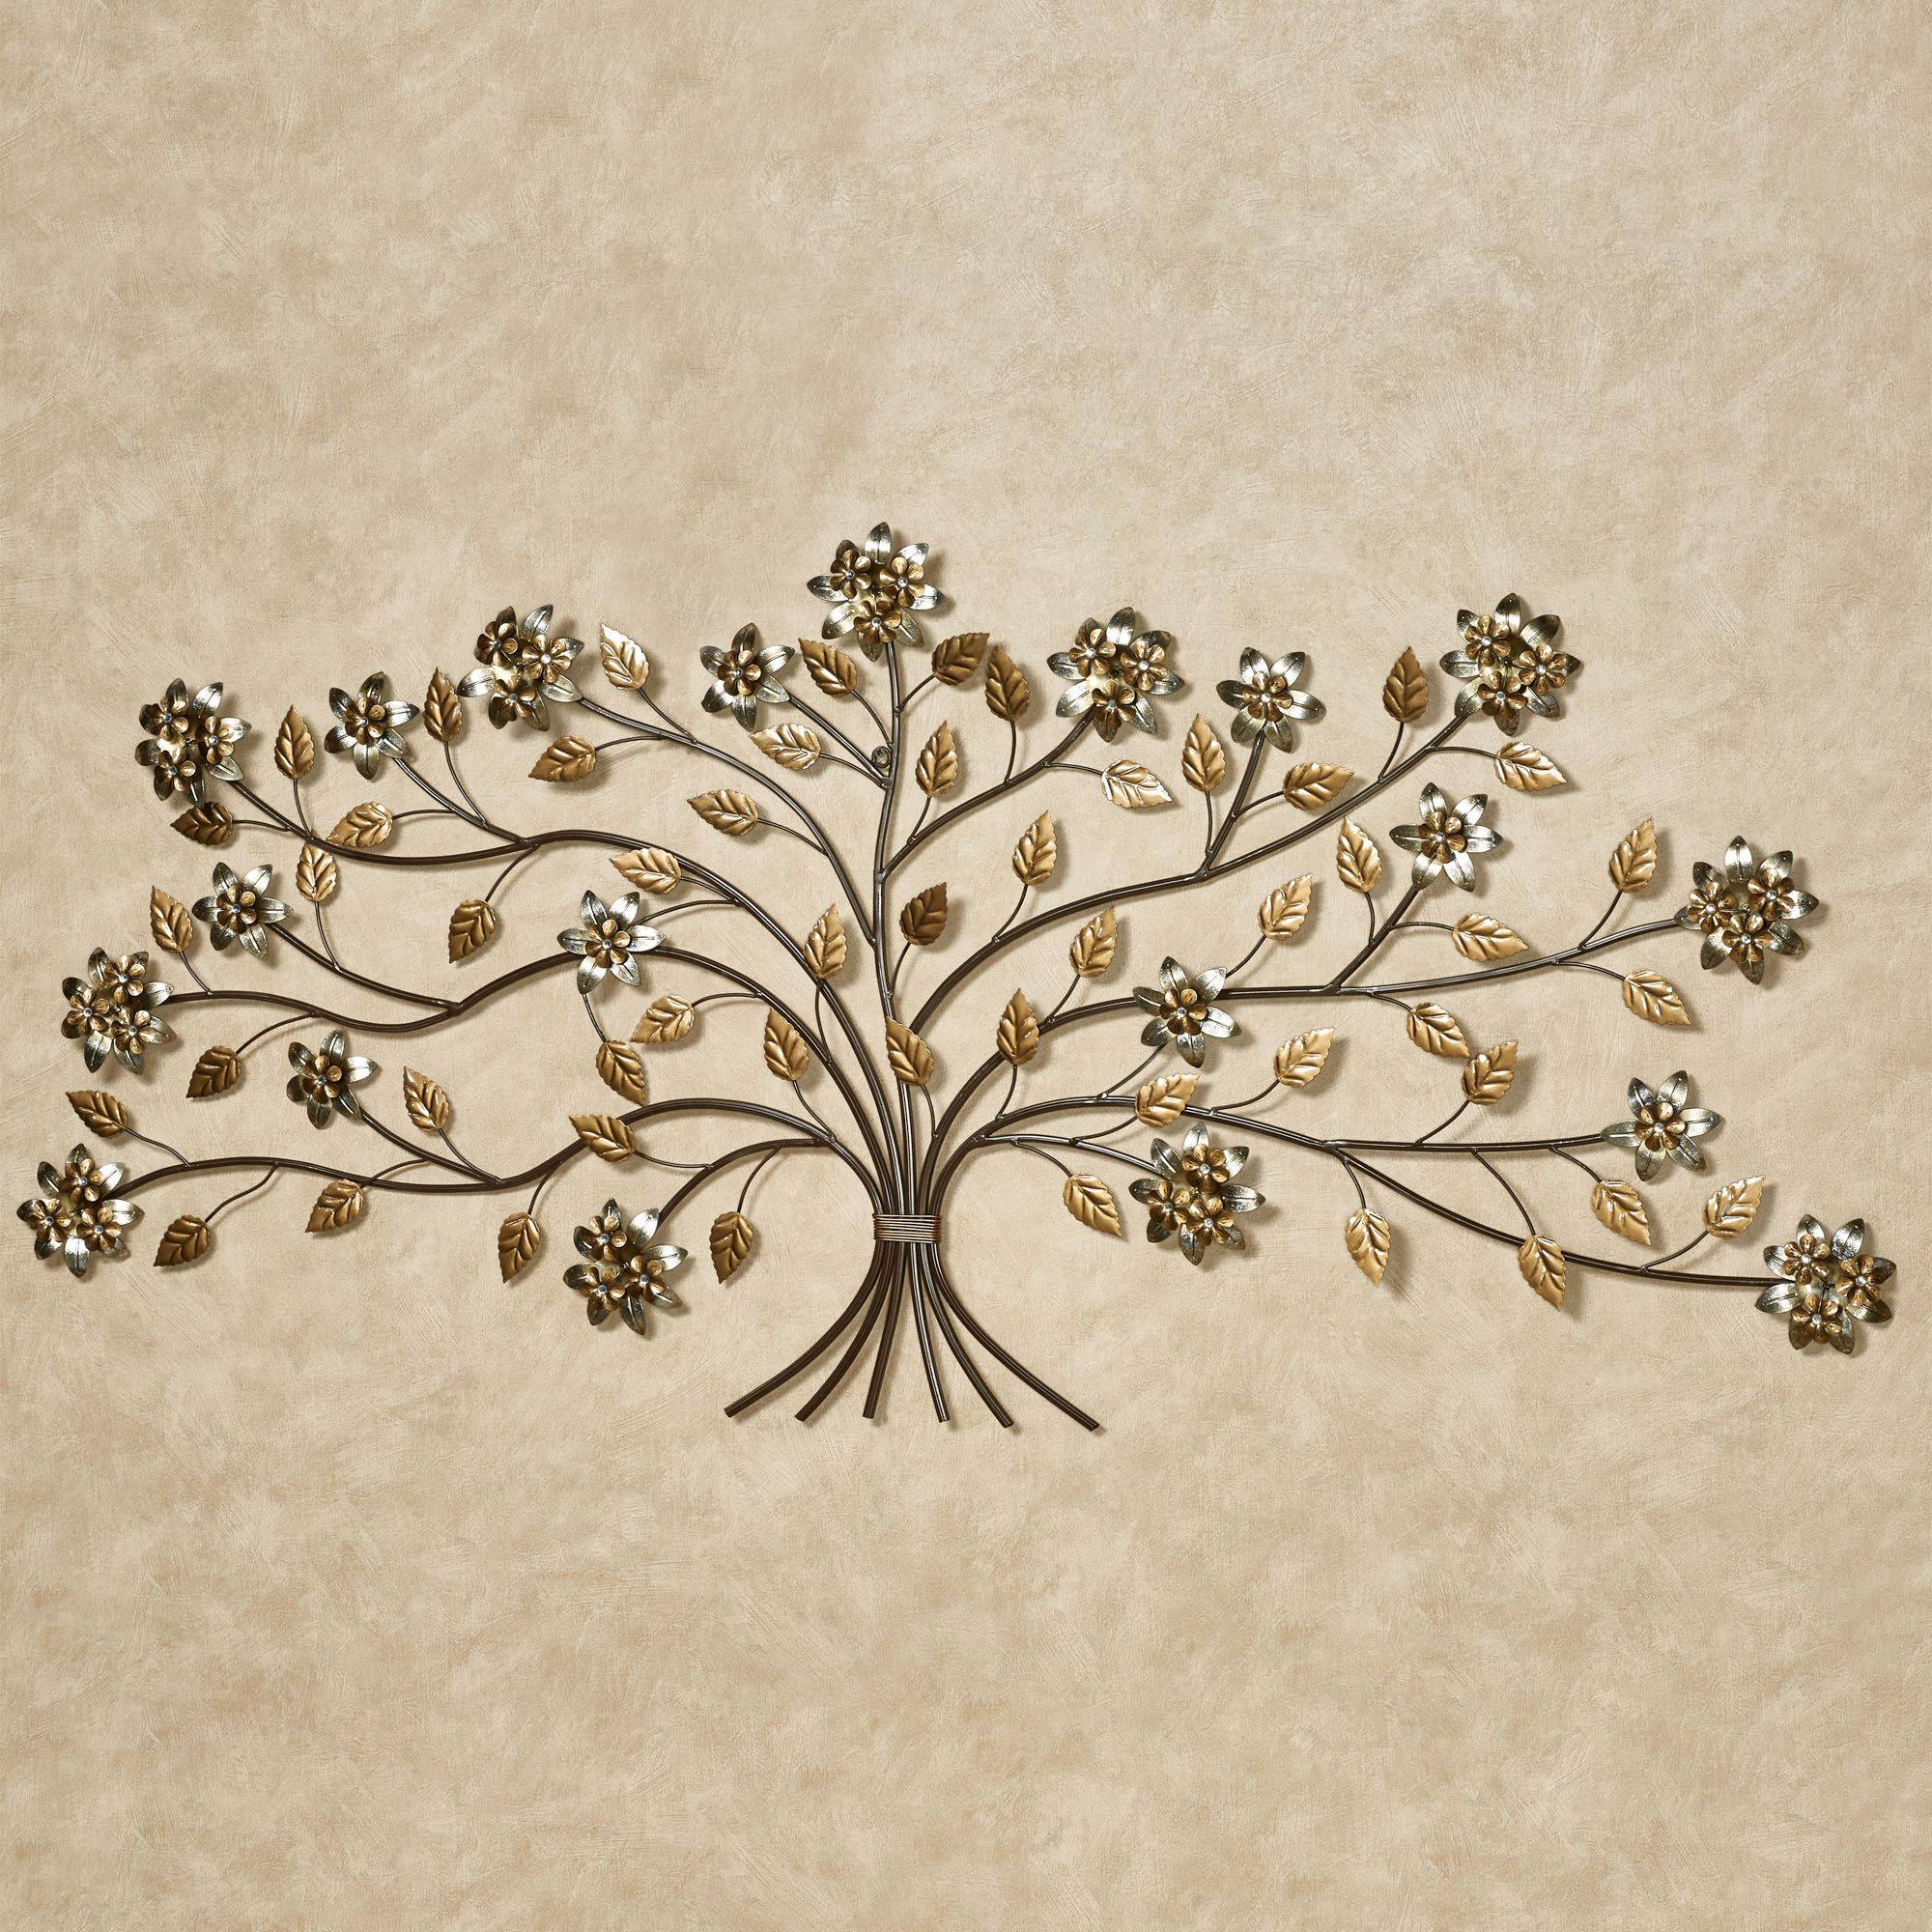 Bellissa Floral Branch Metal Wall Art – 59 Inches Wide Inside Current Branches Metal Wall Art (View 4 of 20)